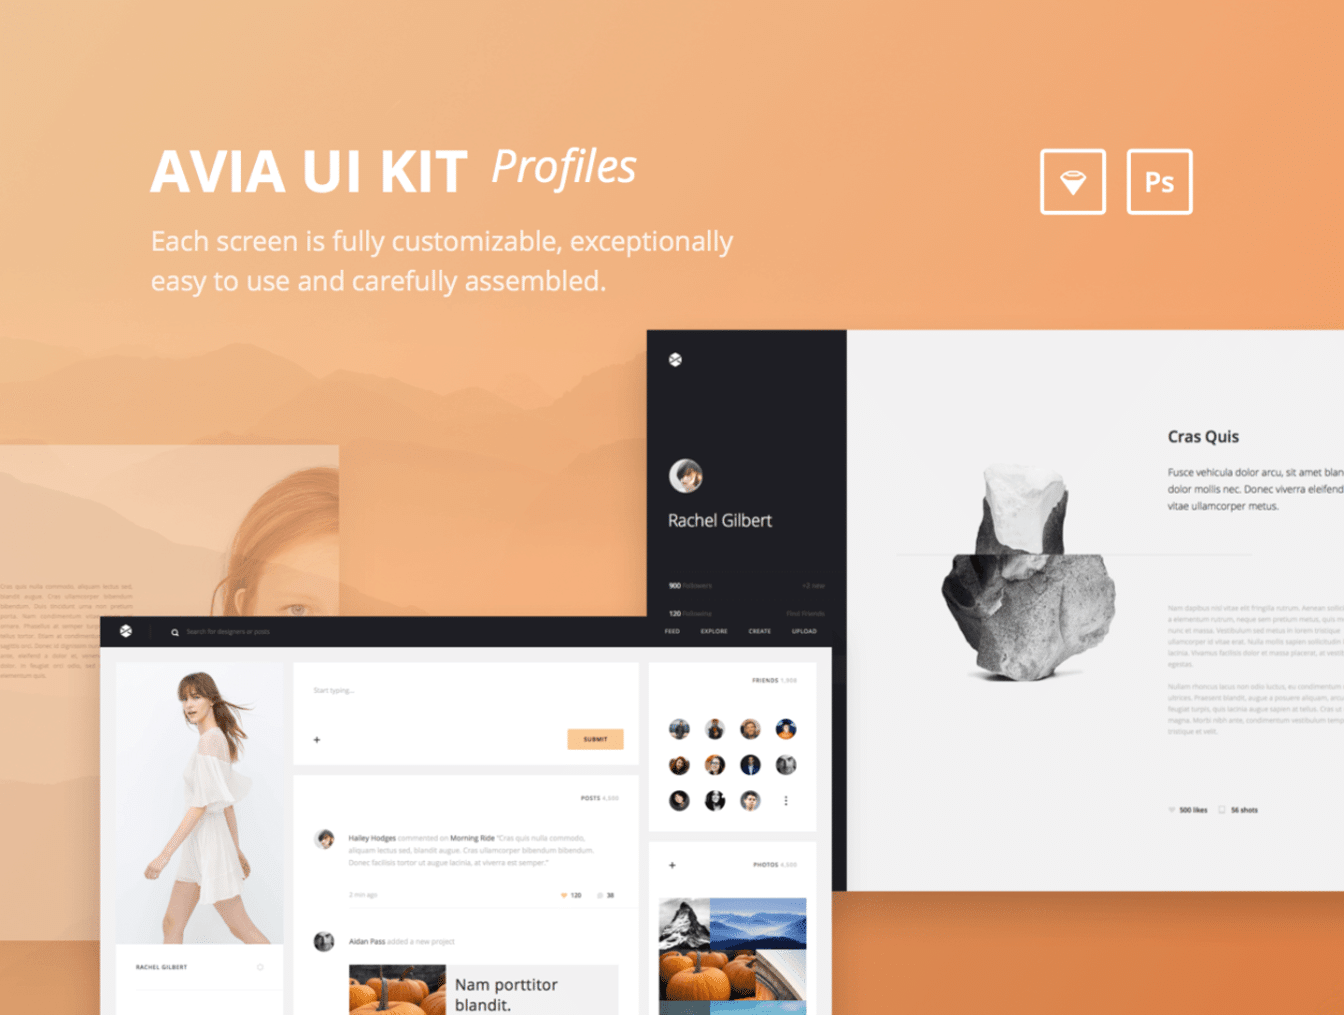 Avia UI Kit - 40 Sketch Template Profile Kit